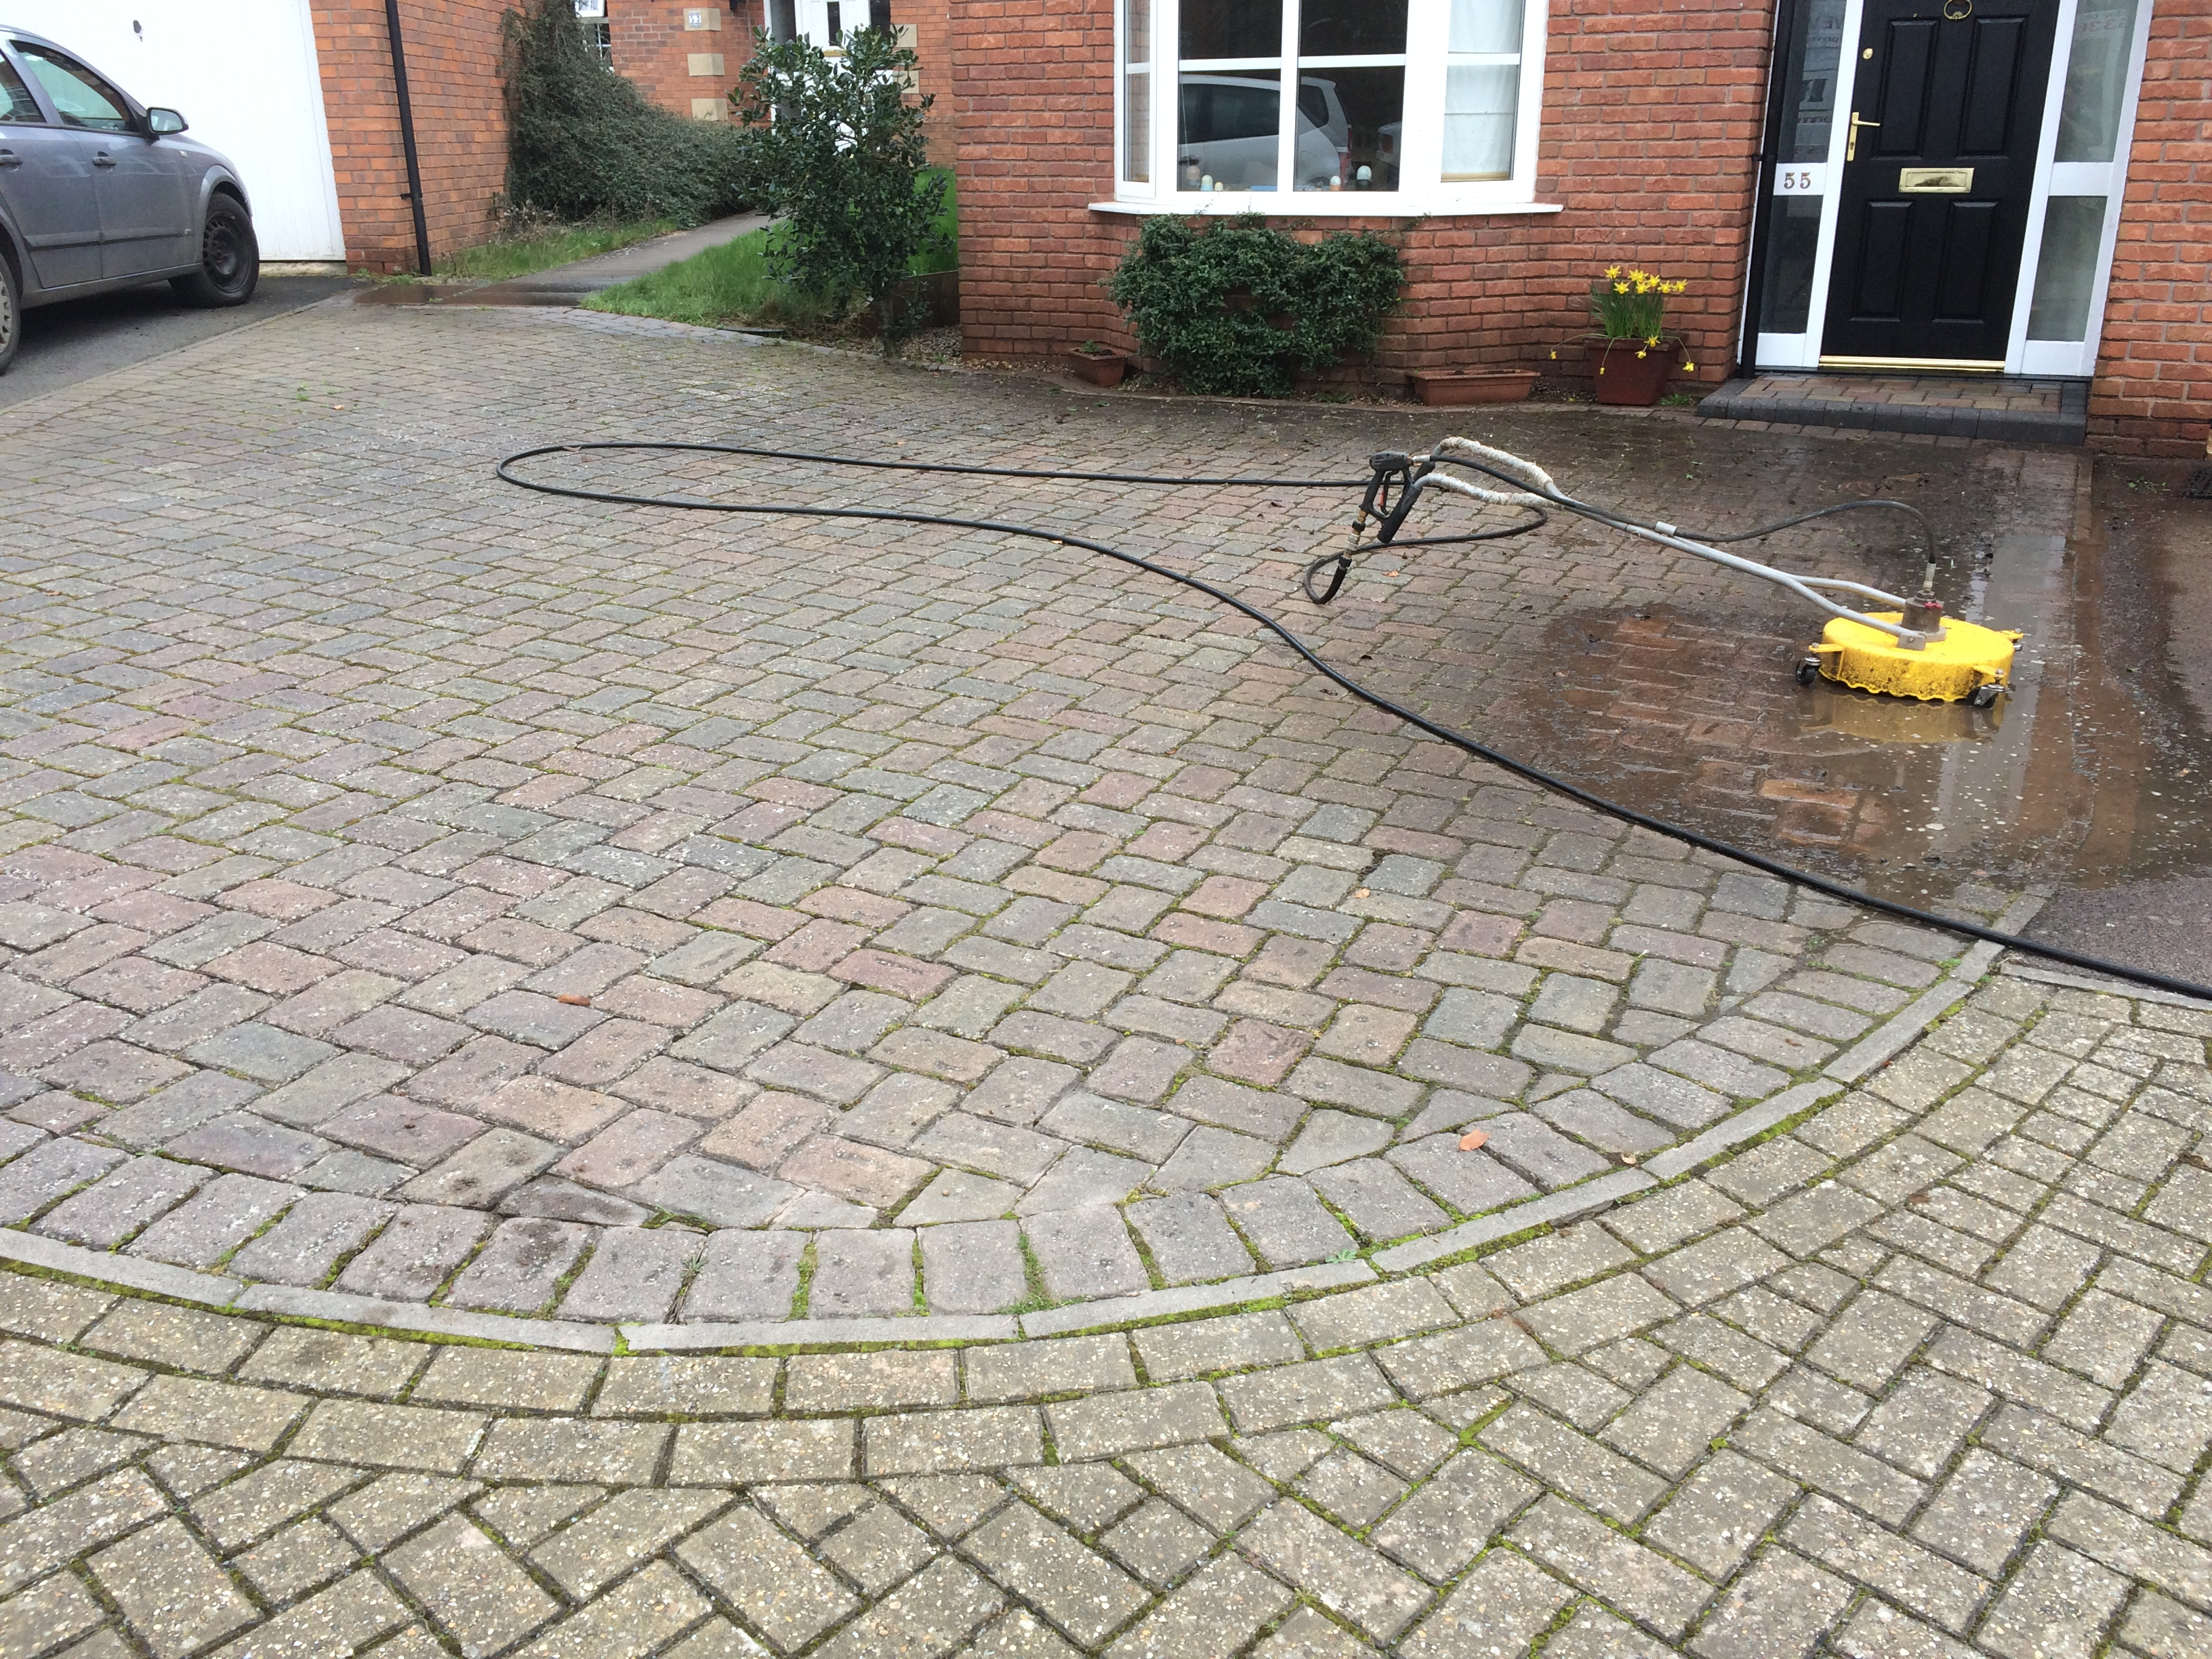 Patio And Driveway Cleaned In Browning Rd Ledbury Drive